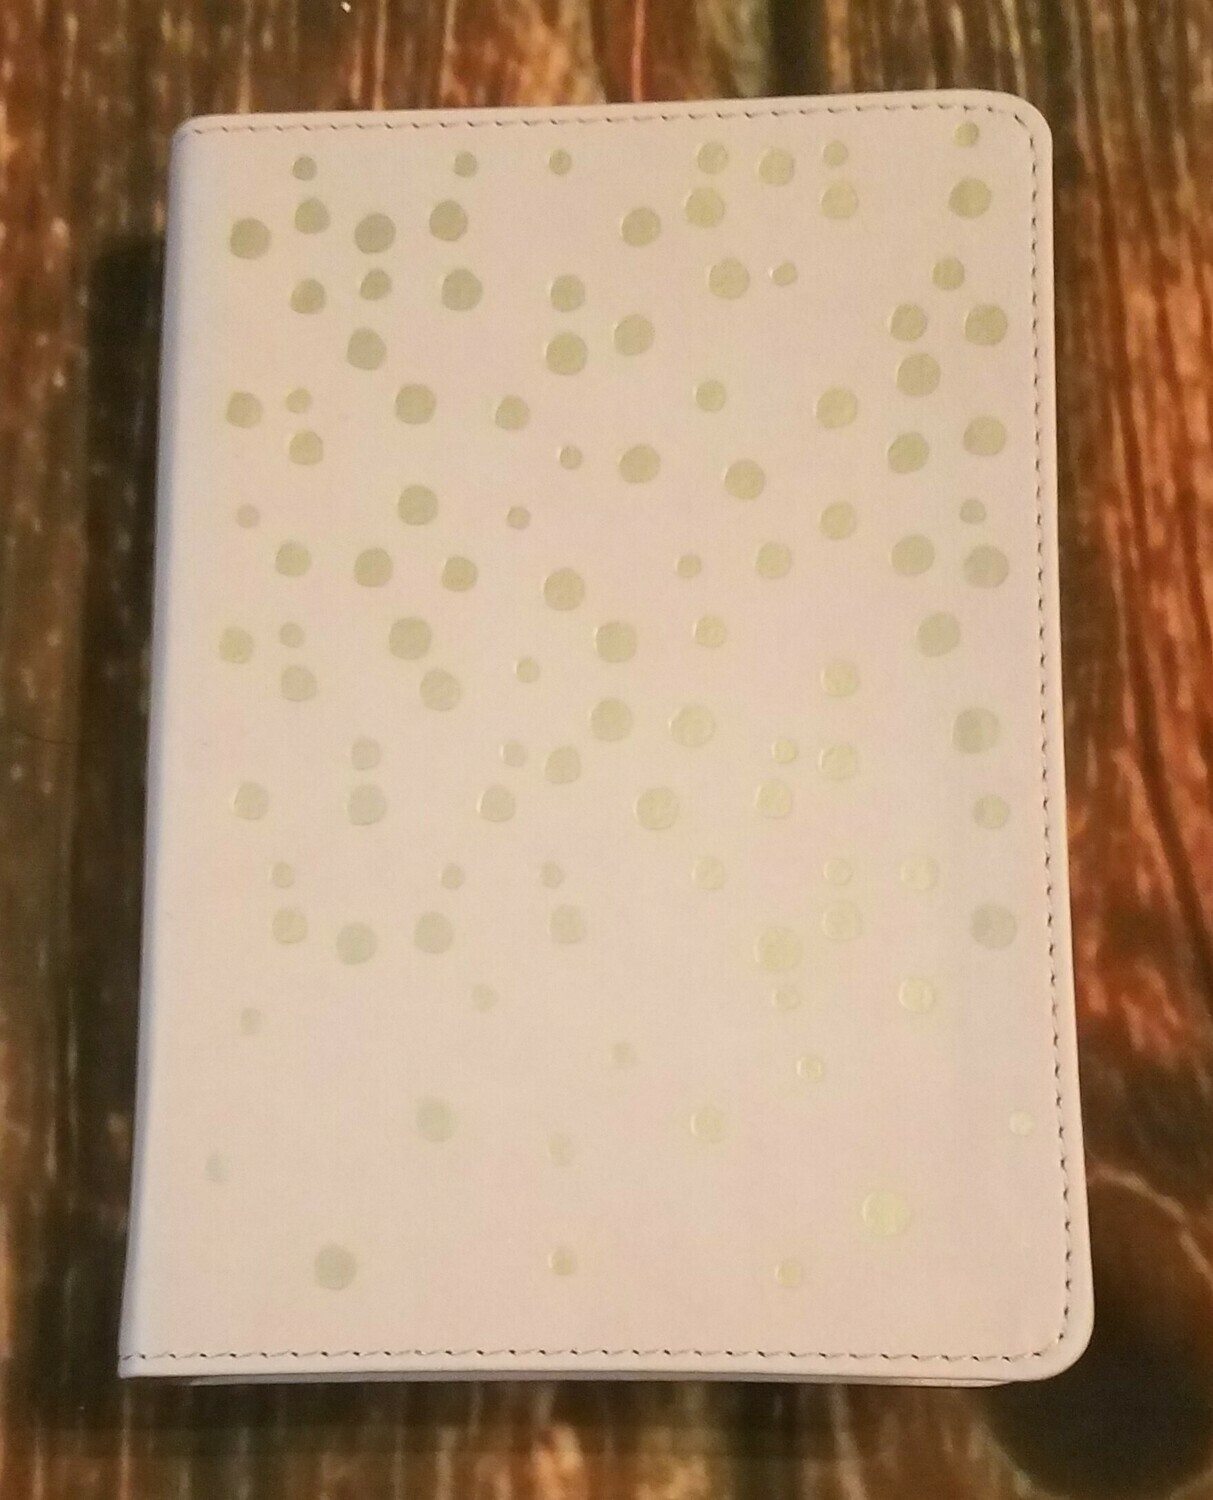 HCSB Compact Ultrathin Bible for Teens - Rose/Gold